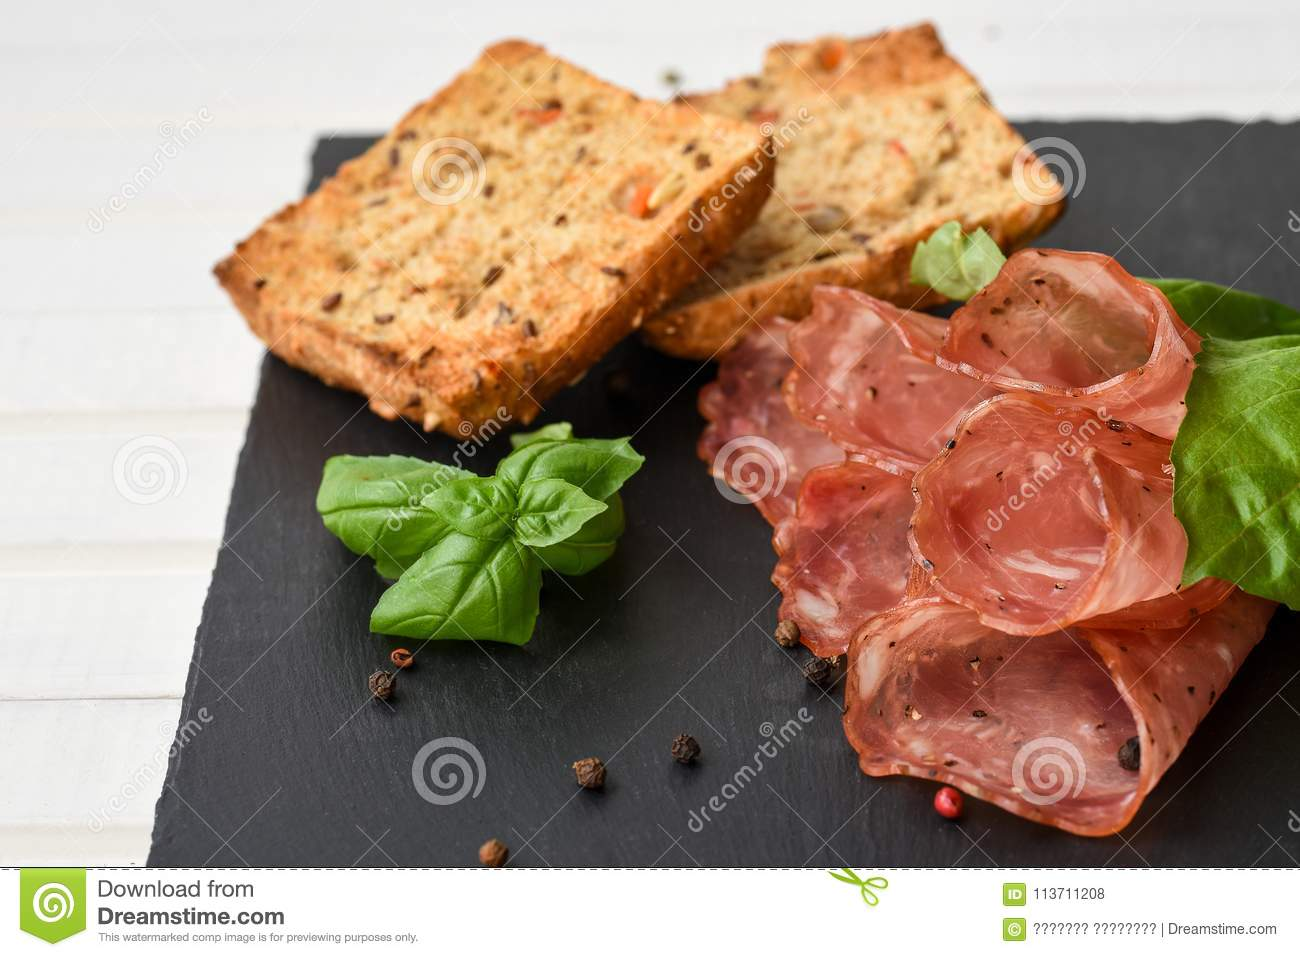 Salami smoked sausage slices basil leaves, peppercorns and bread